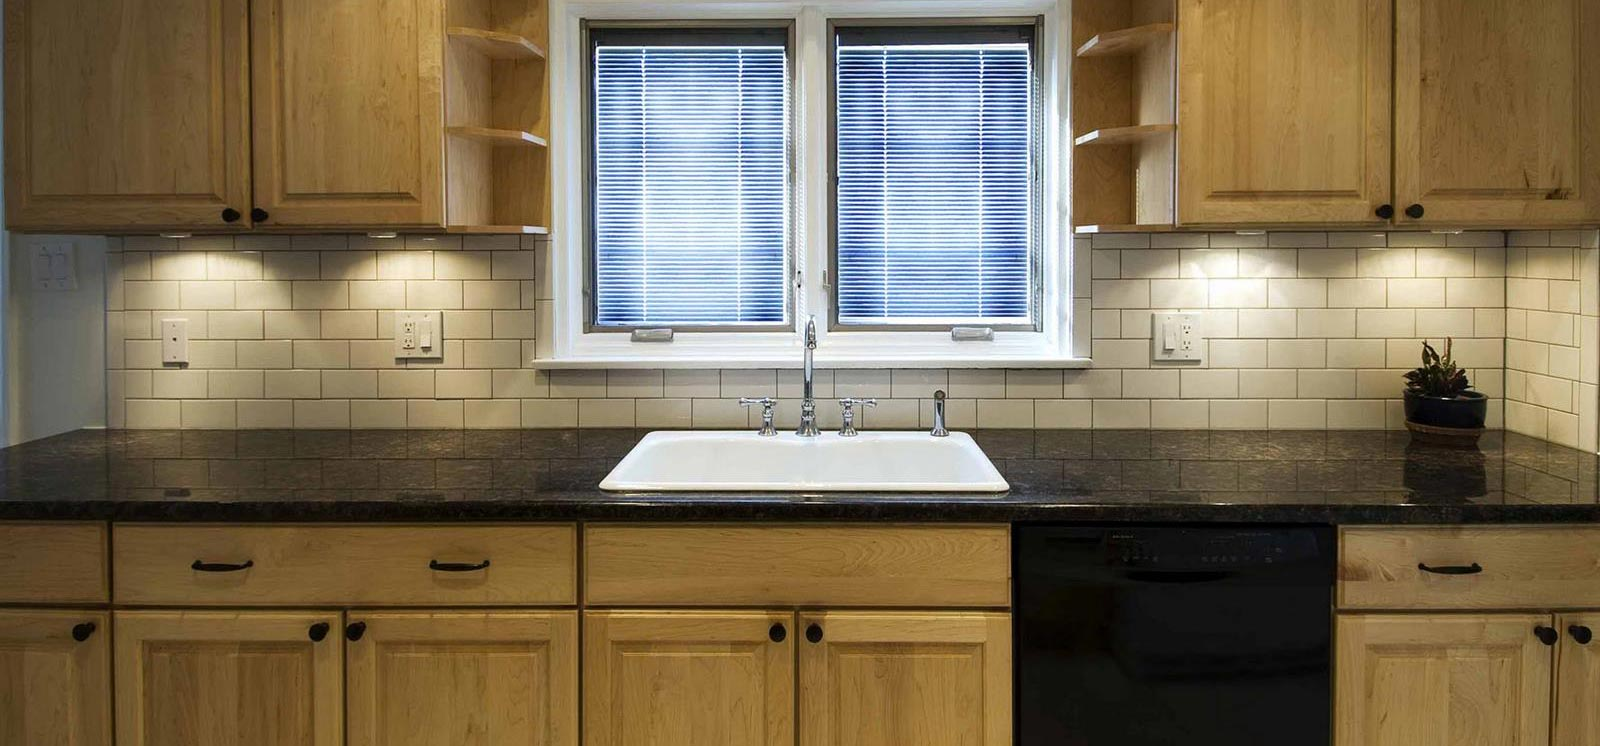 installing kitchen cabinets philadelphia kitchen cabinet and countertop experts 1888